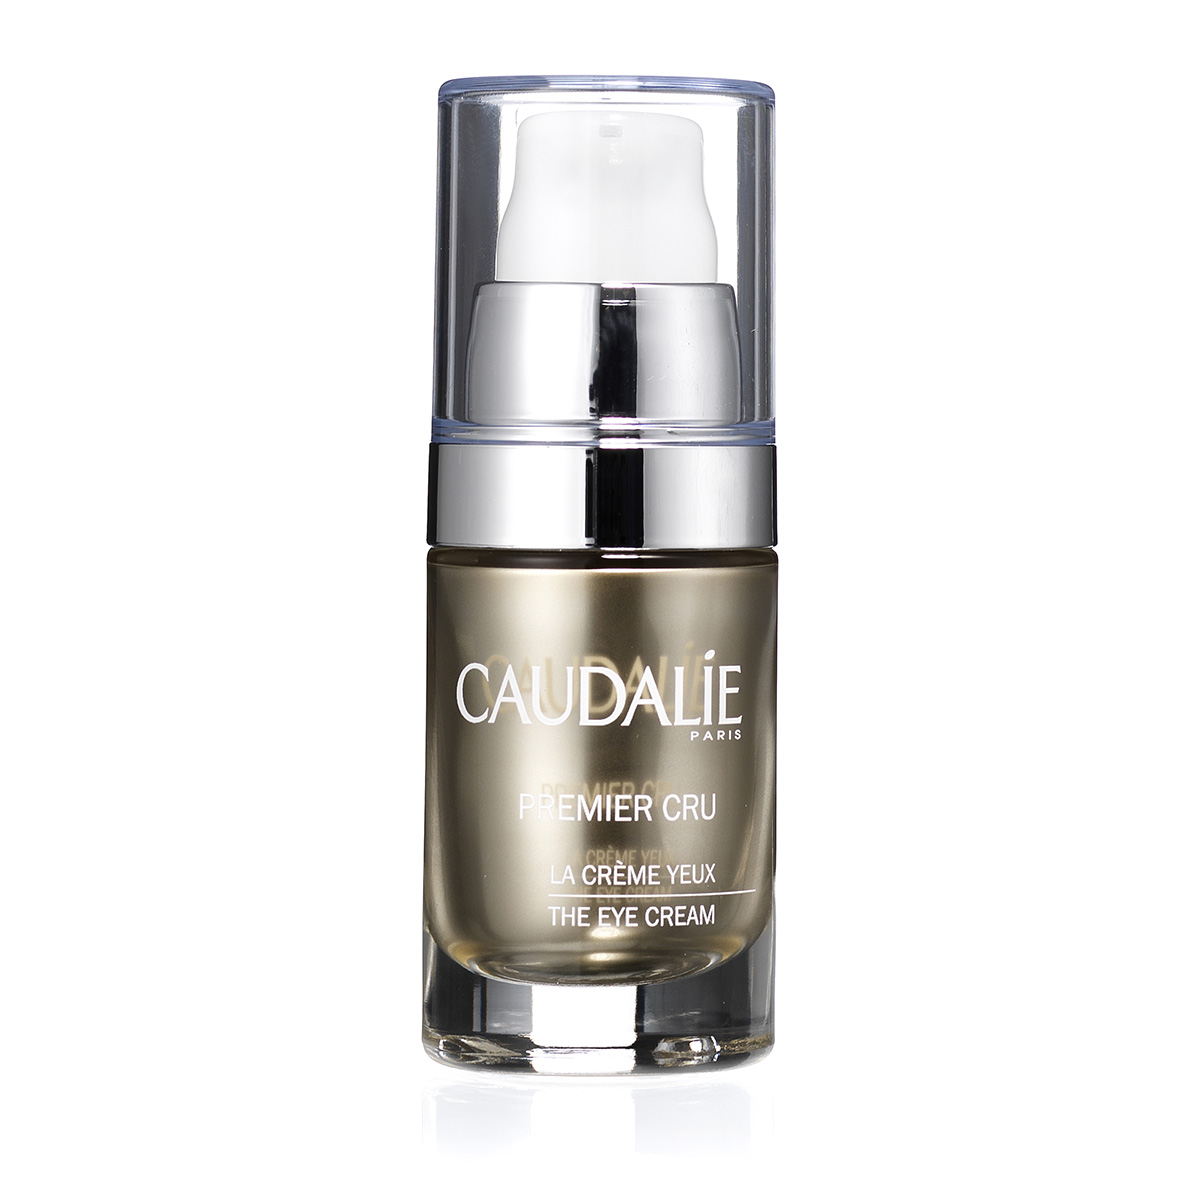 Caudalie Premier Cru The Eye Cream - 15 ml